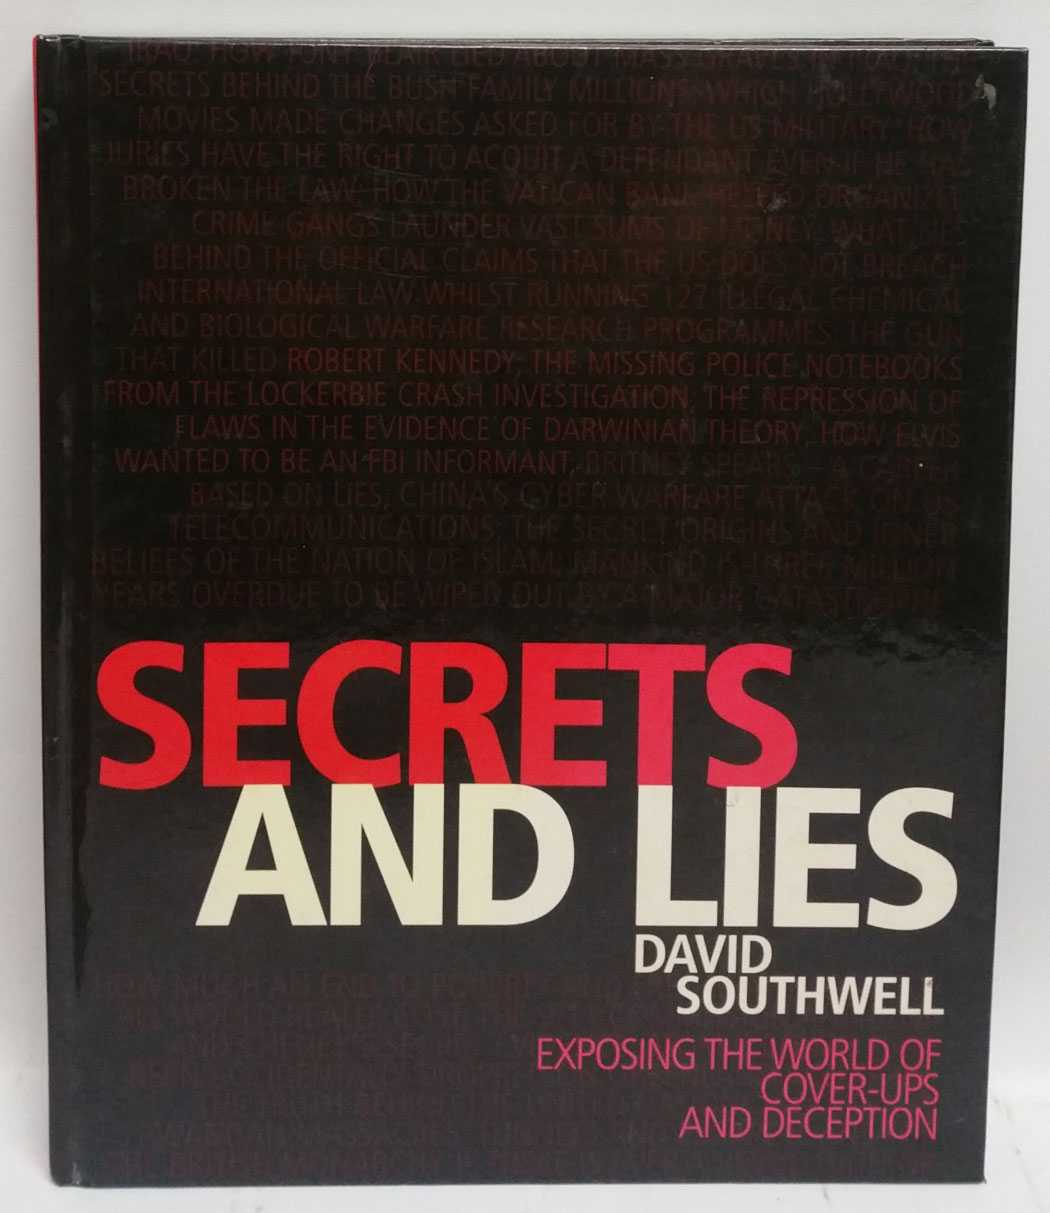 Secrets and Lies: Exposing The World of Cover-Ups and Deception, David Southwell